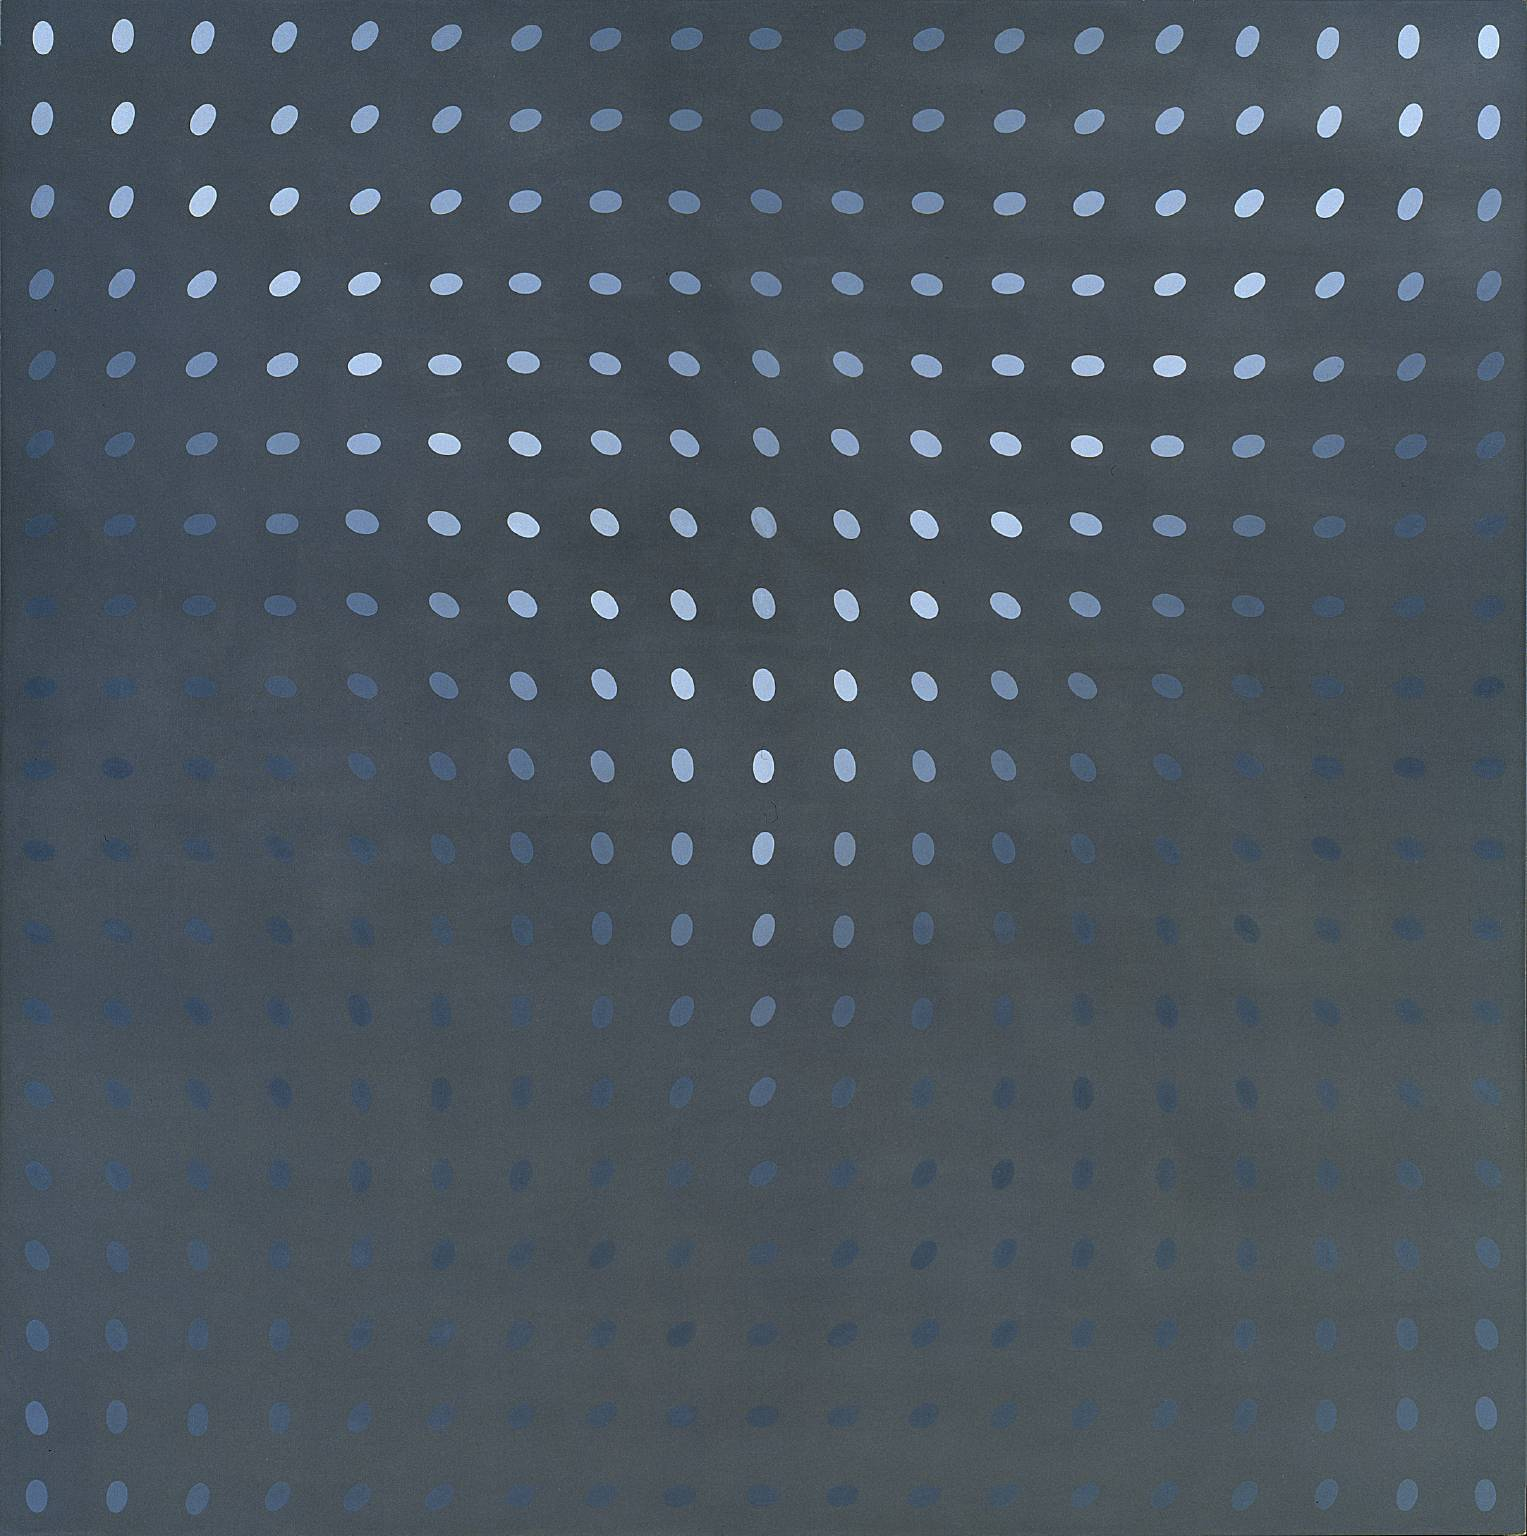 The Work of Bridget Riley: Juxtapoz-BridgetRiley21.jpg